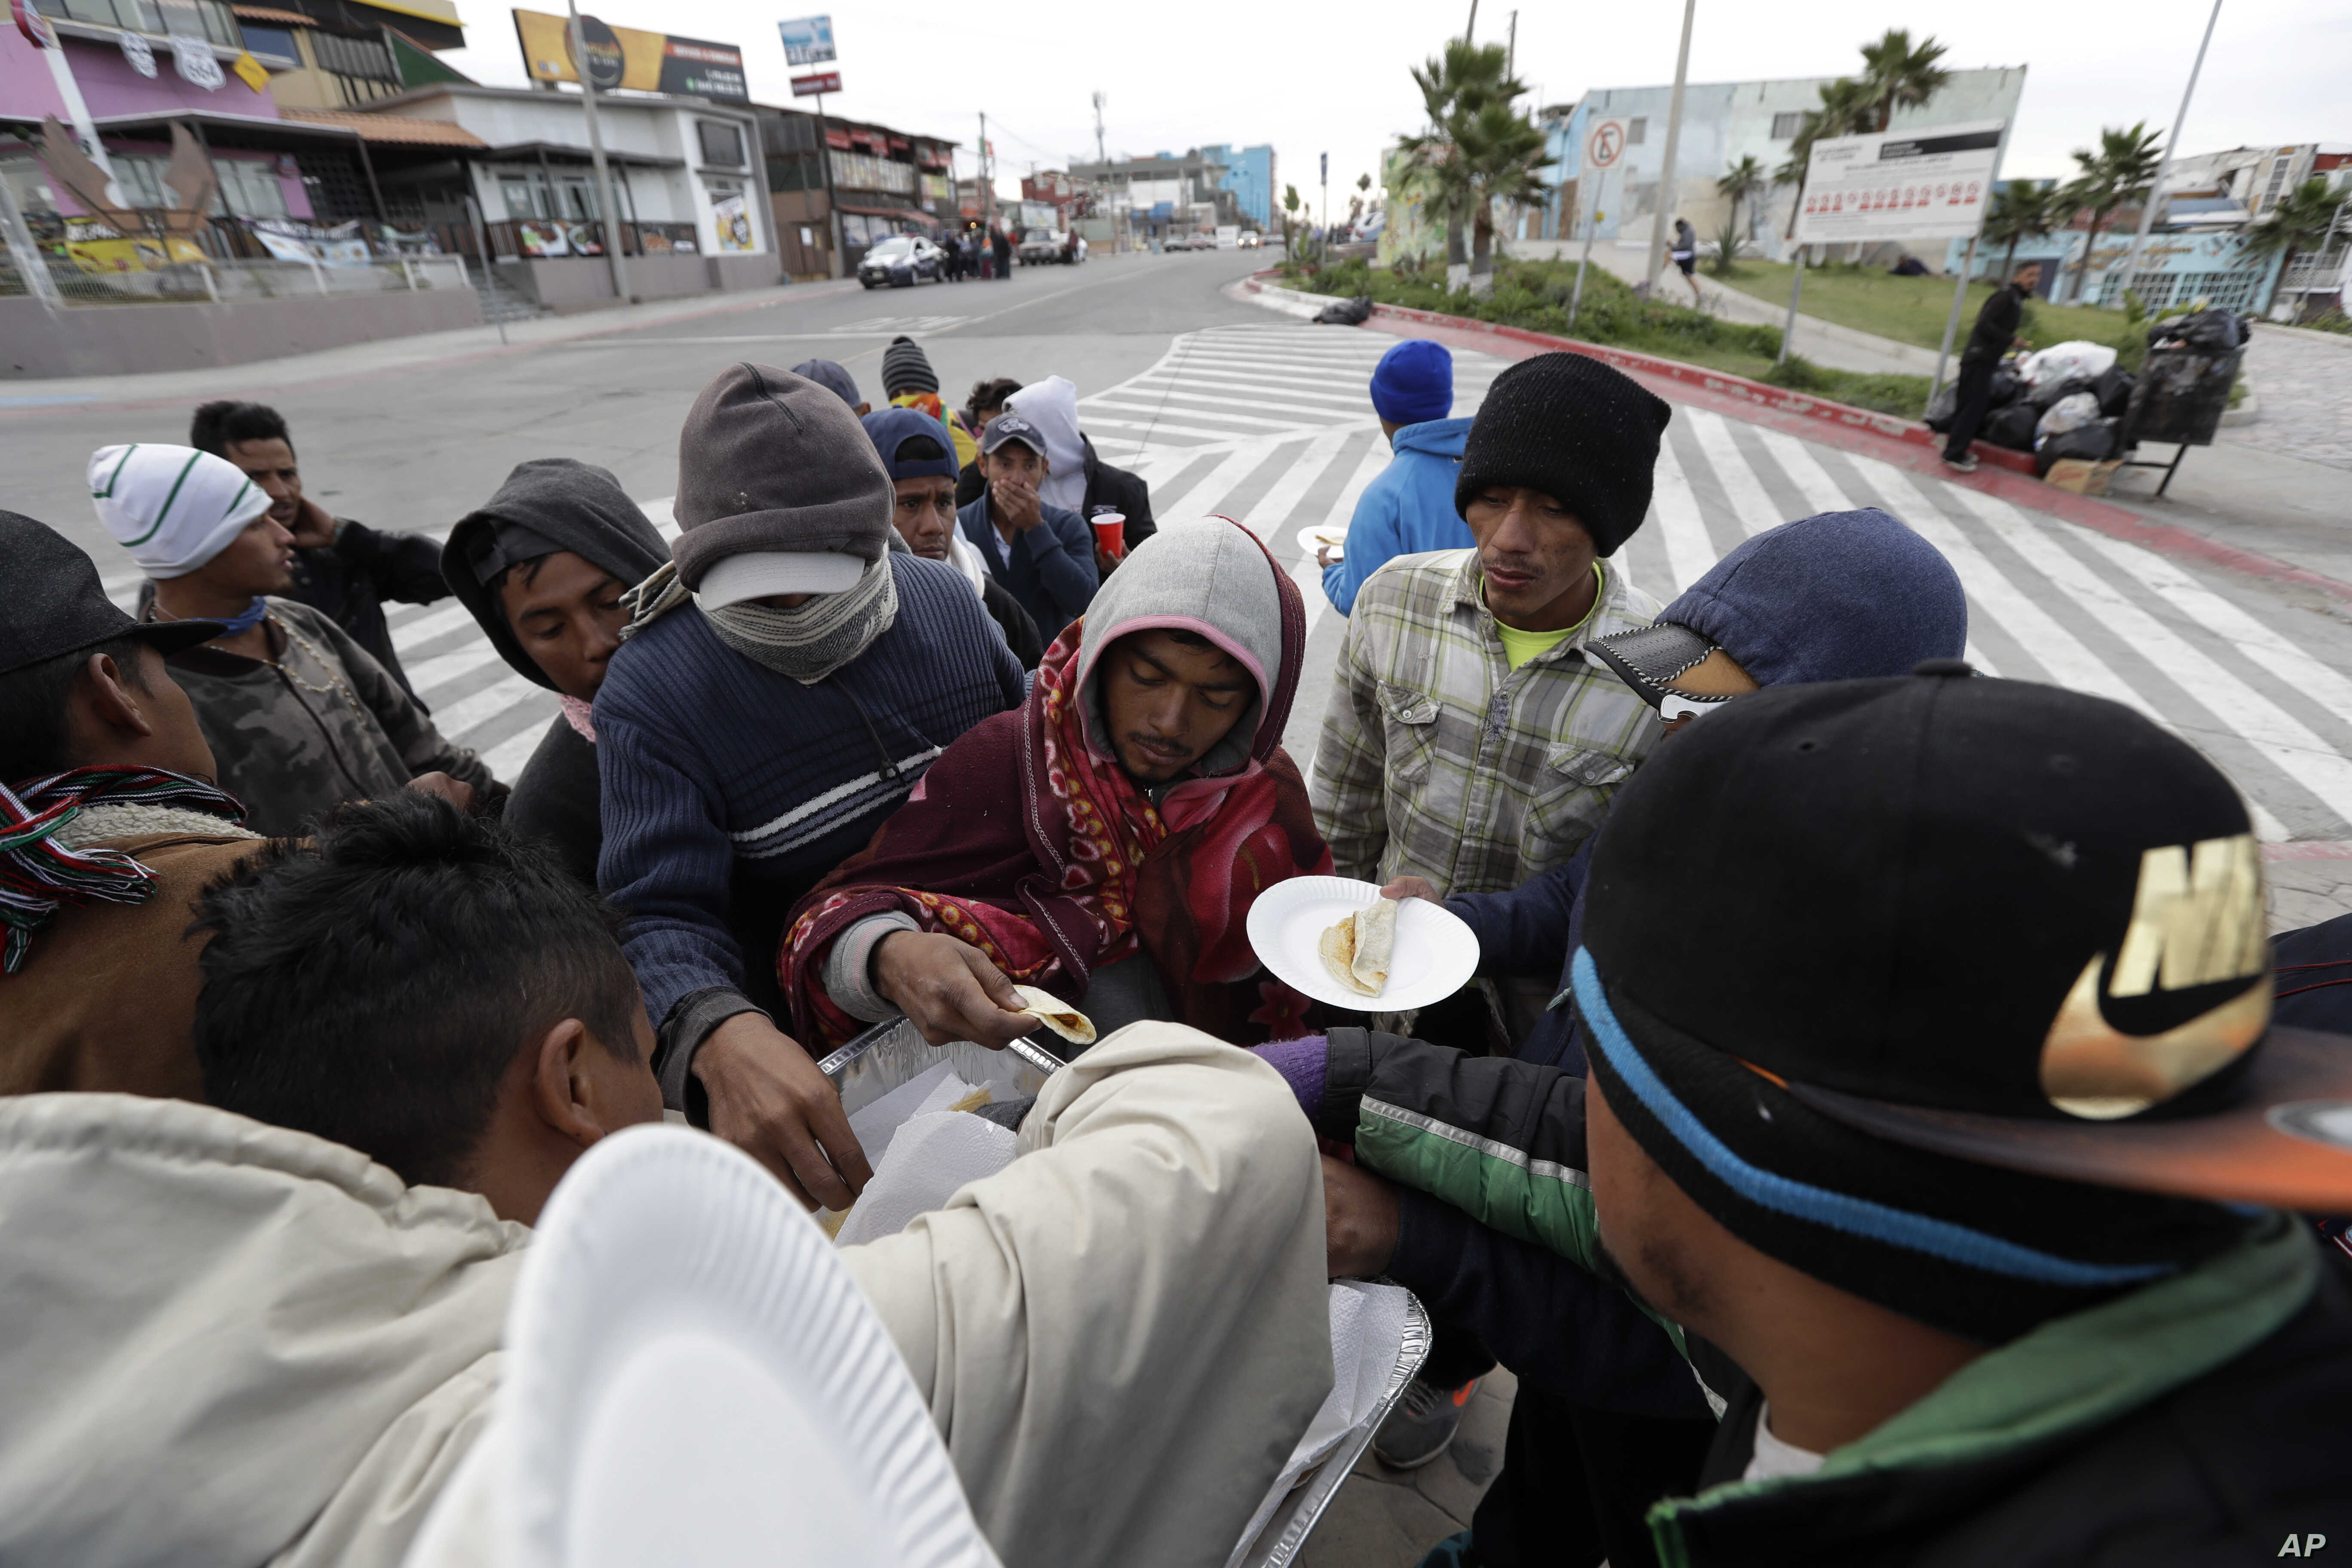 A volunteer hands out tacos to a group of migrants from Central America in Tijuana, Mexico, Nov. 14, 2018.